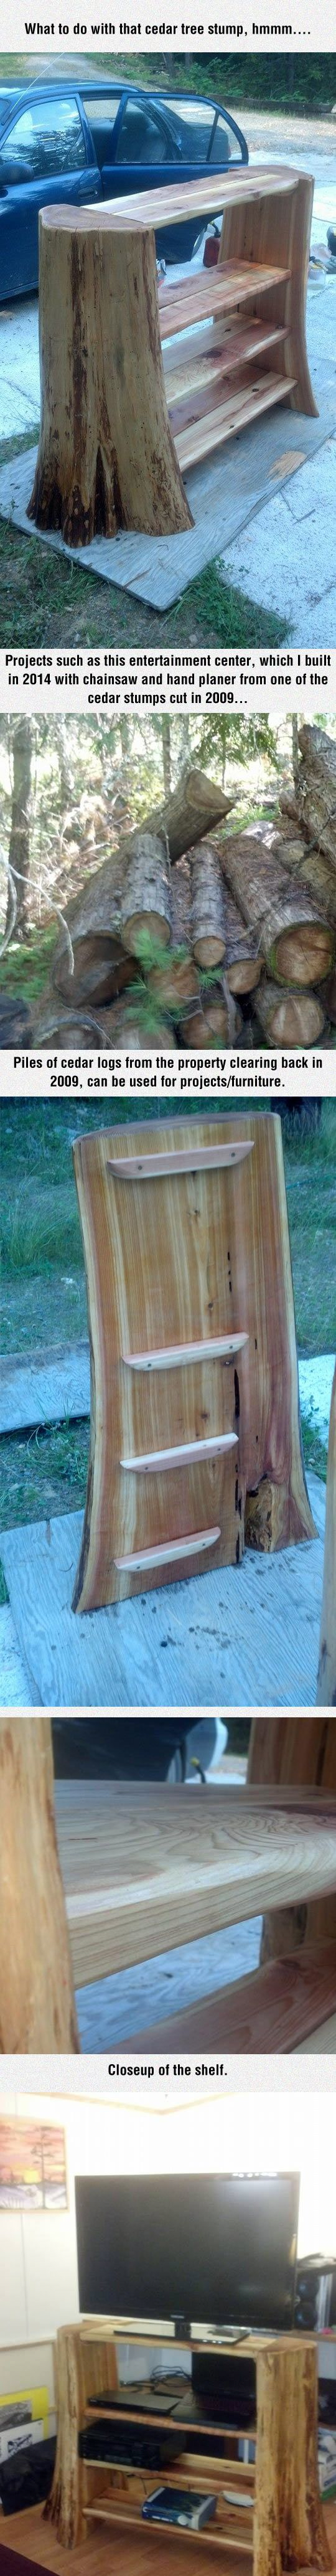 Cedar stump entertainment center